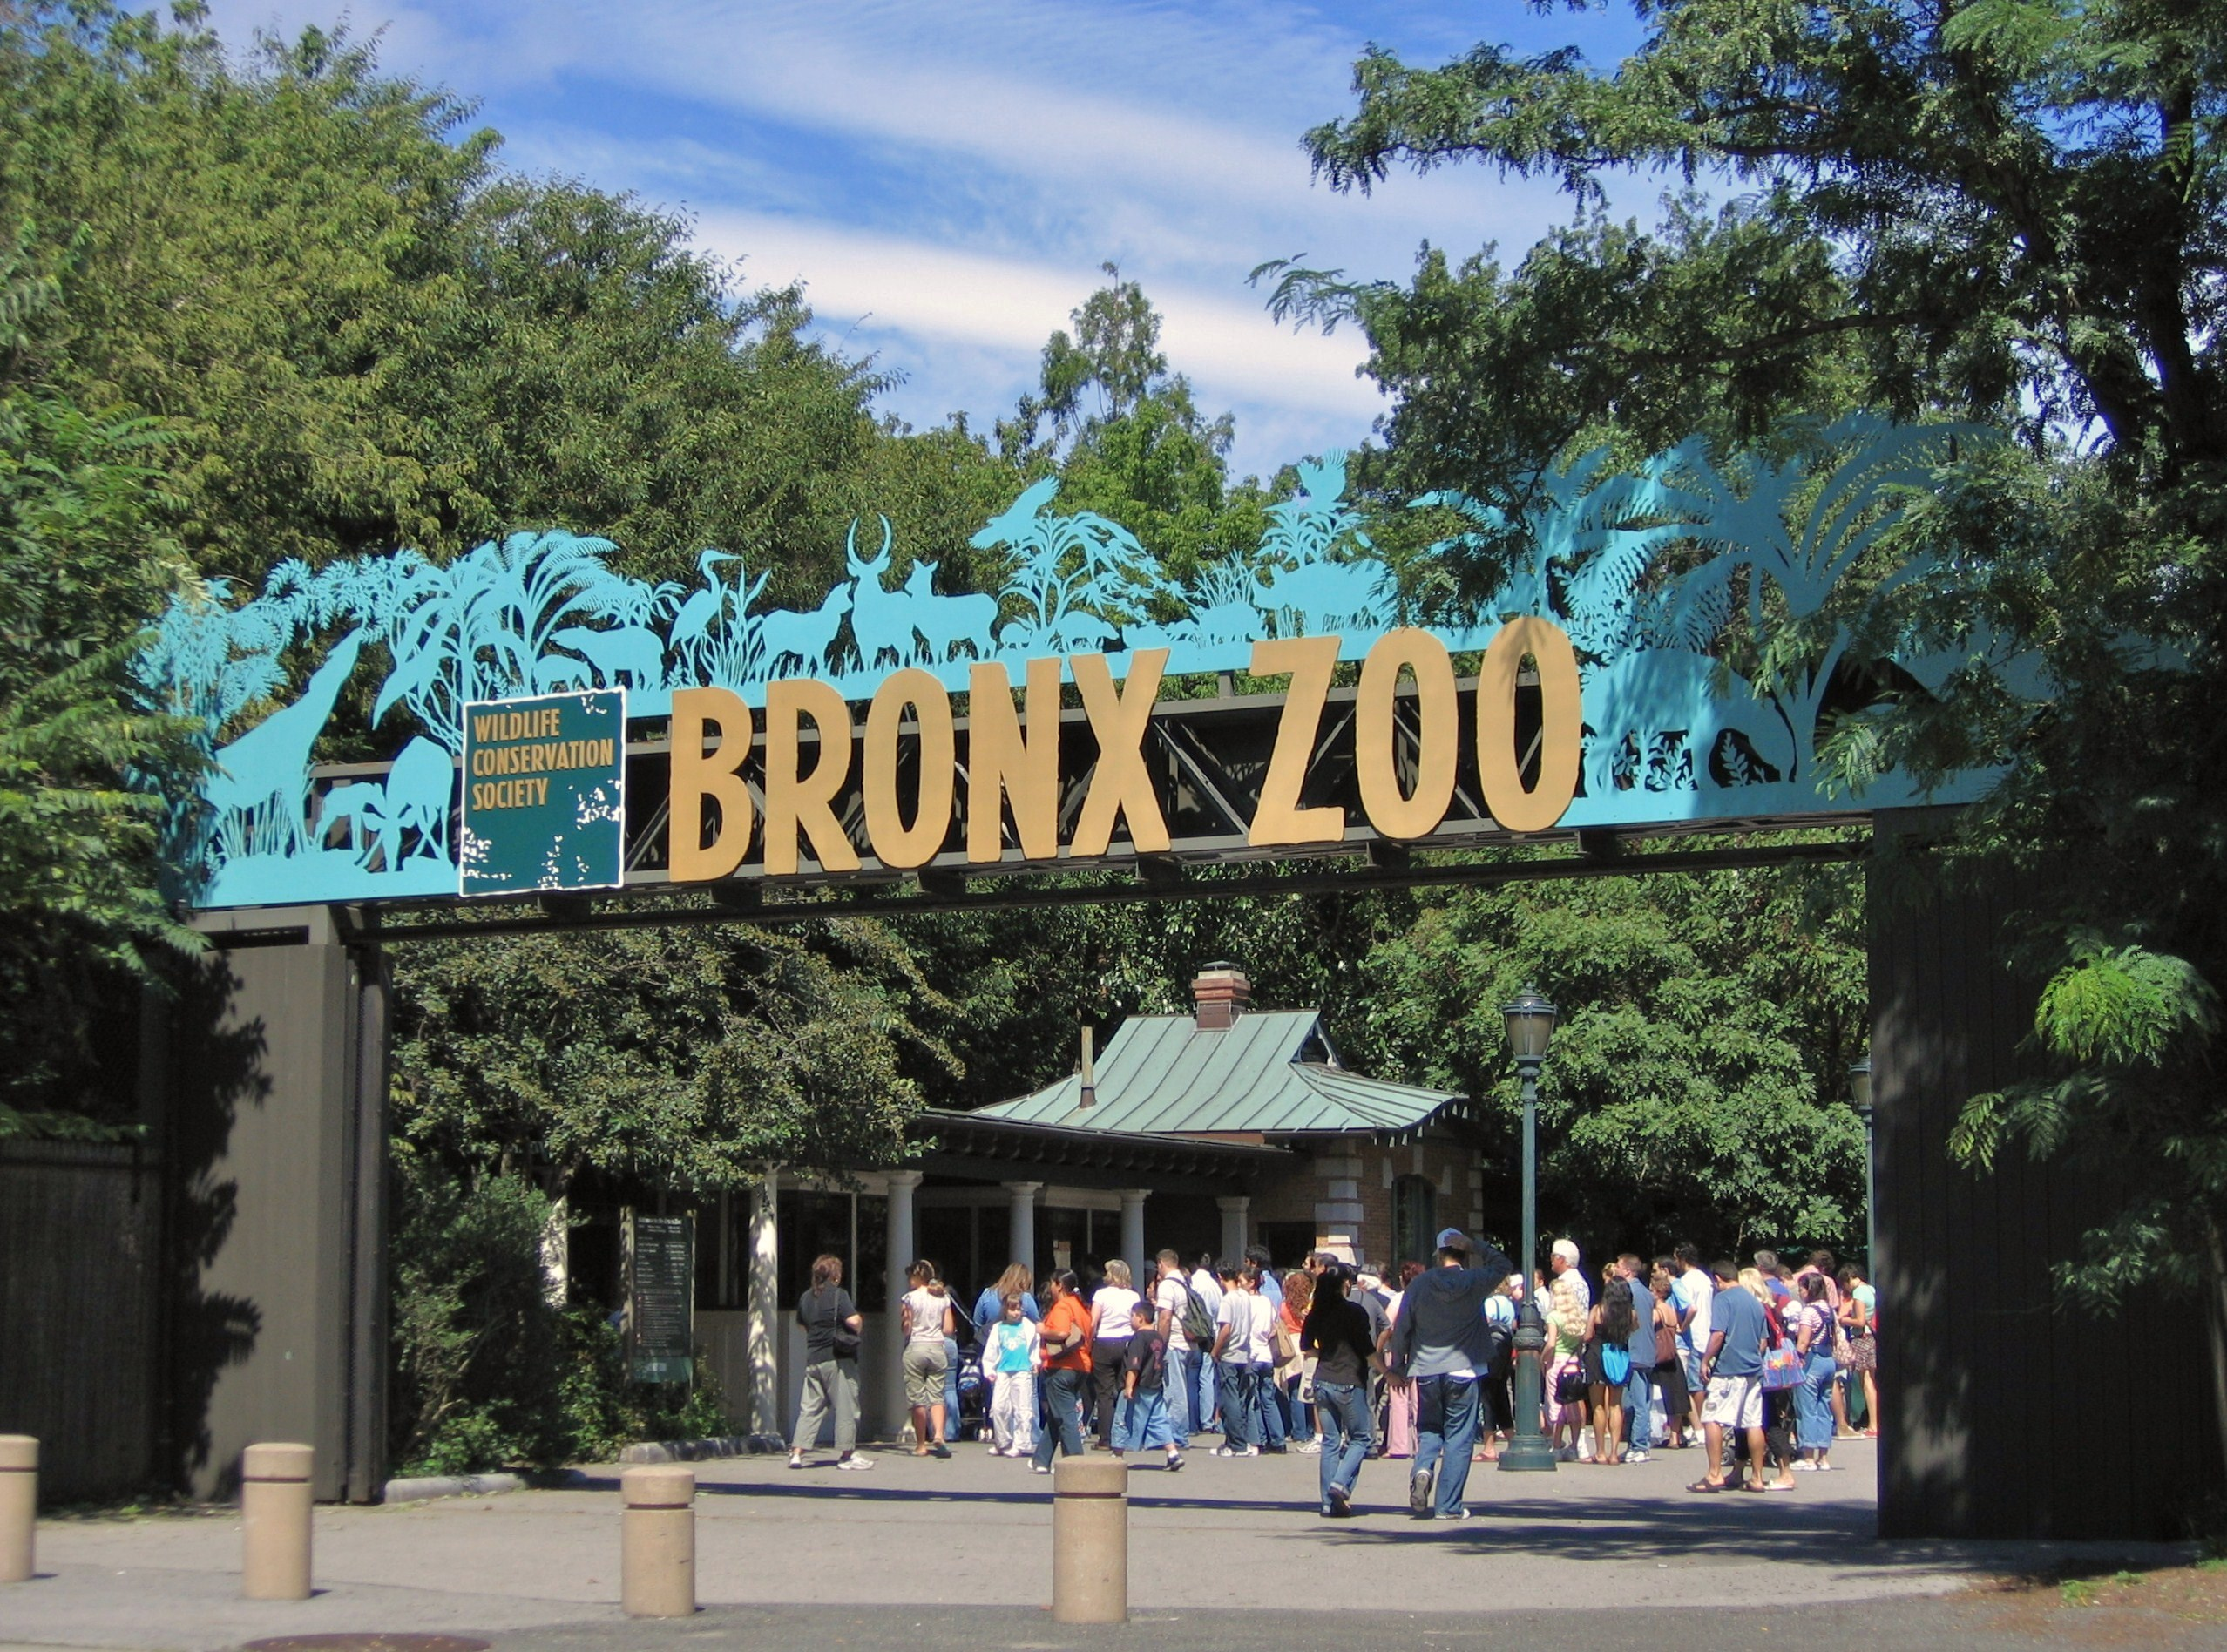 Bronx zoo clipart clip art free stock The Bronx Zoo | All Tickets Inc. clip art free stock